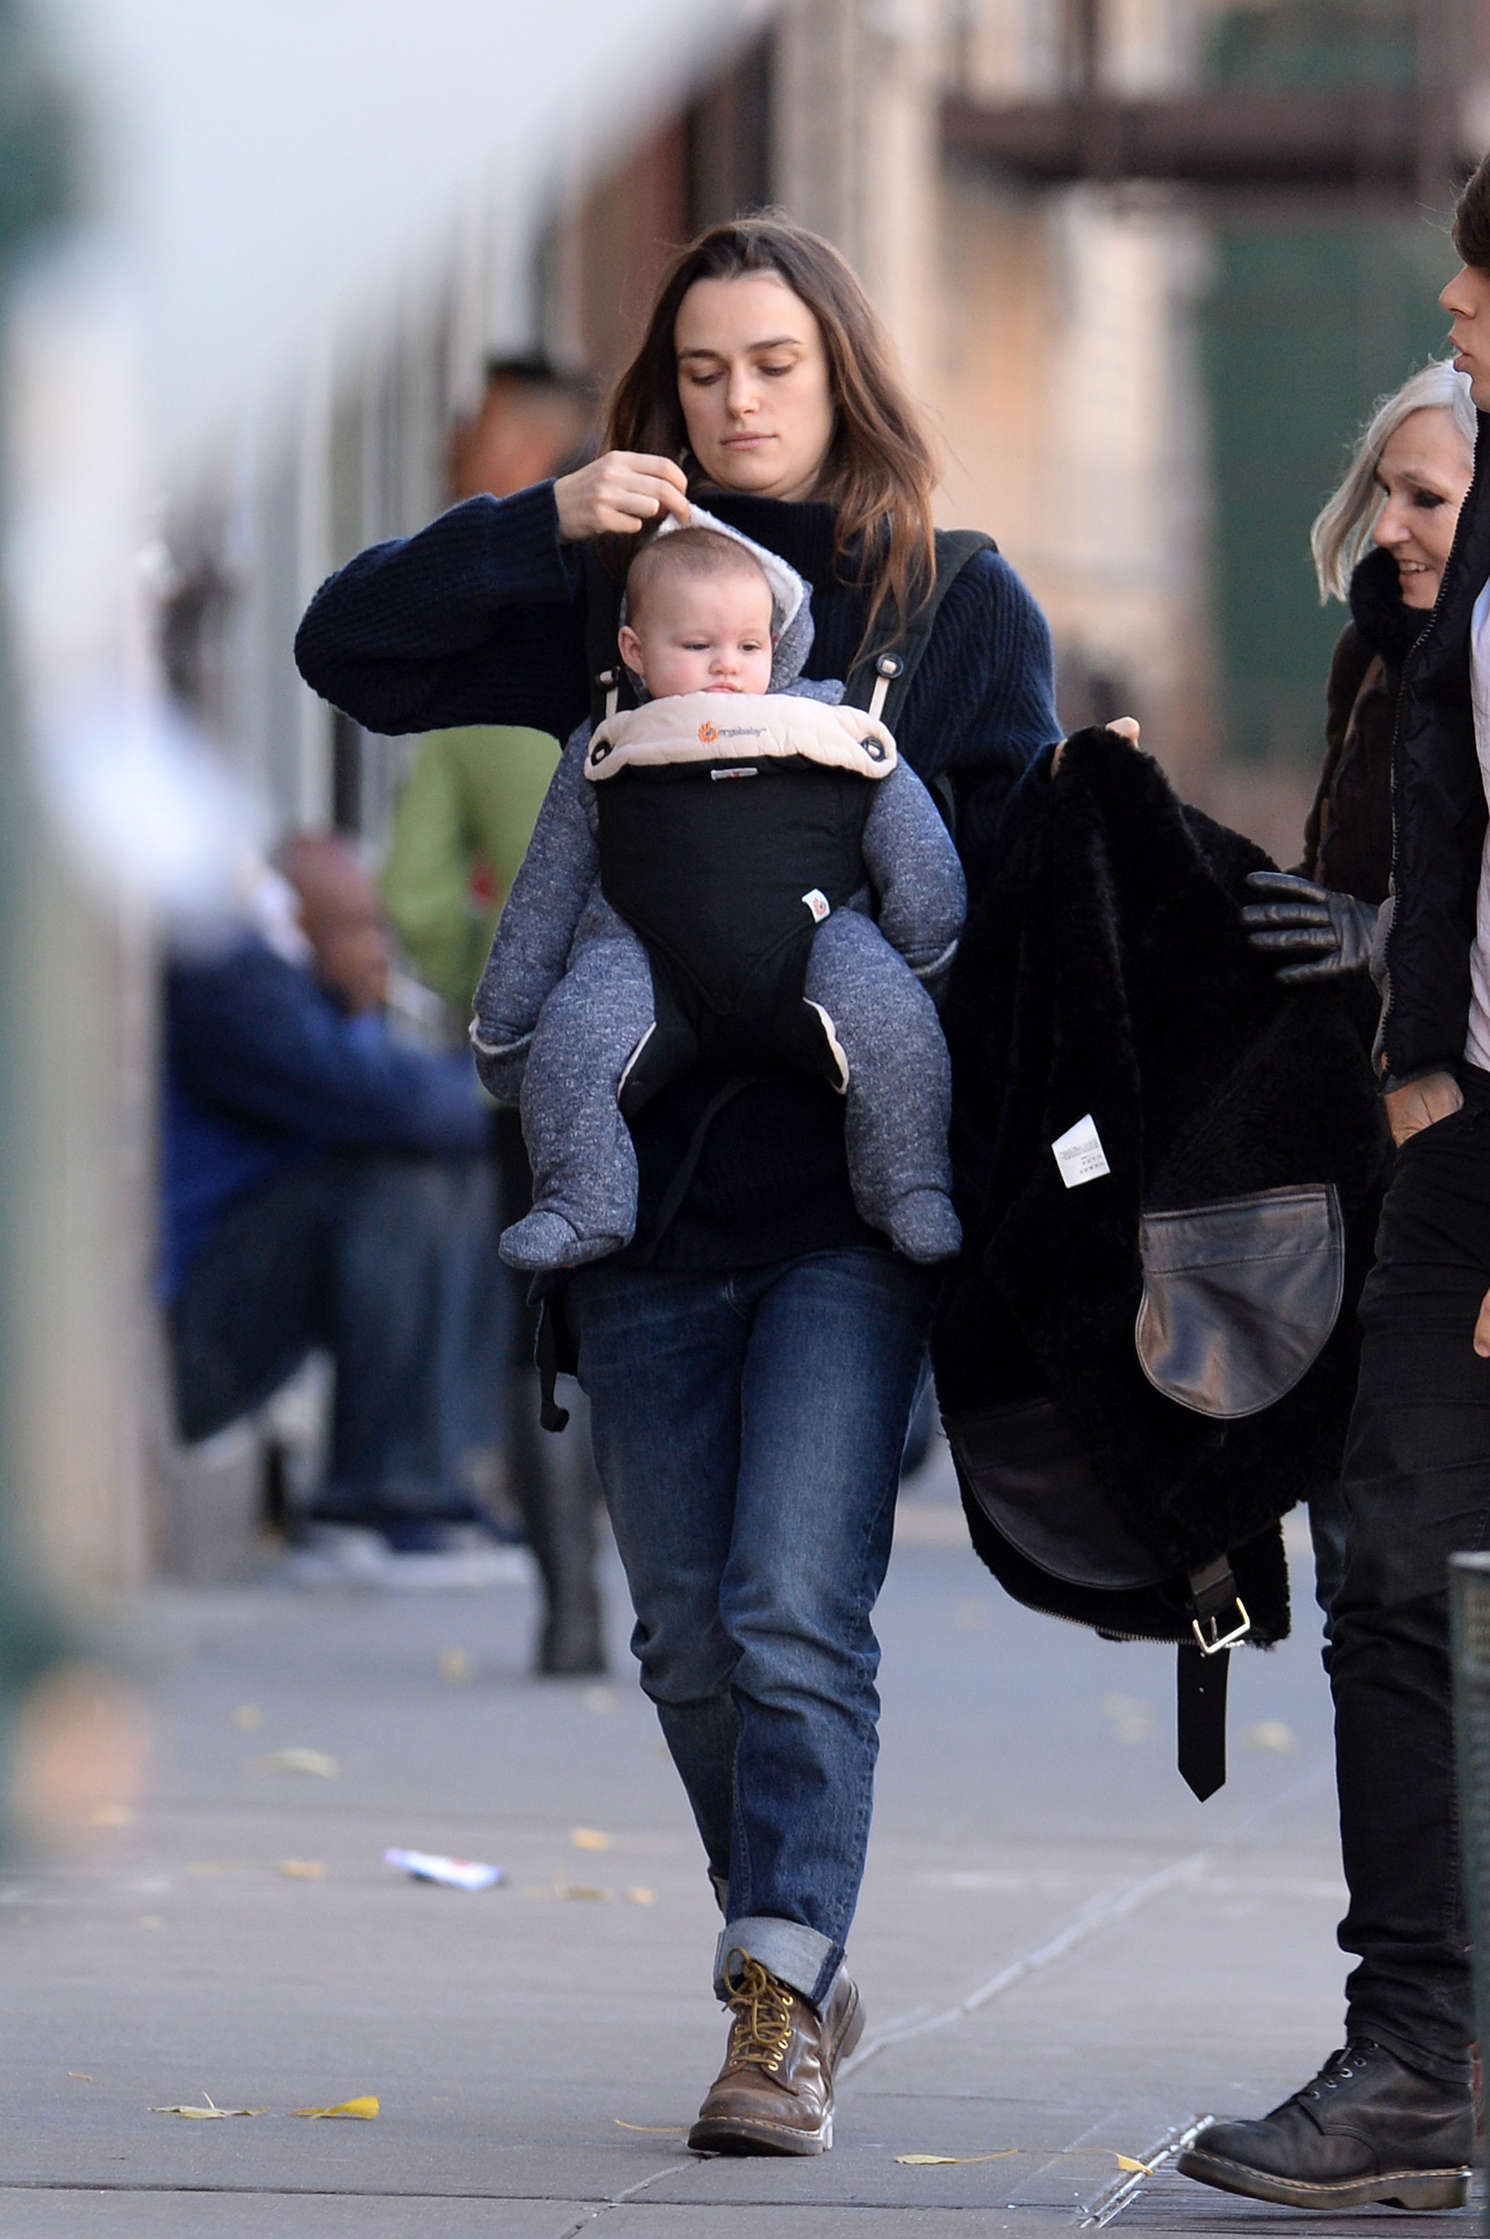 Keira Knightley With Her Daughter 25 Gotceleb